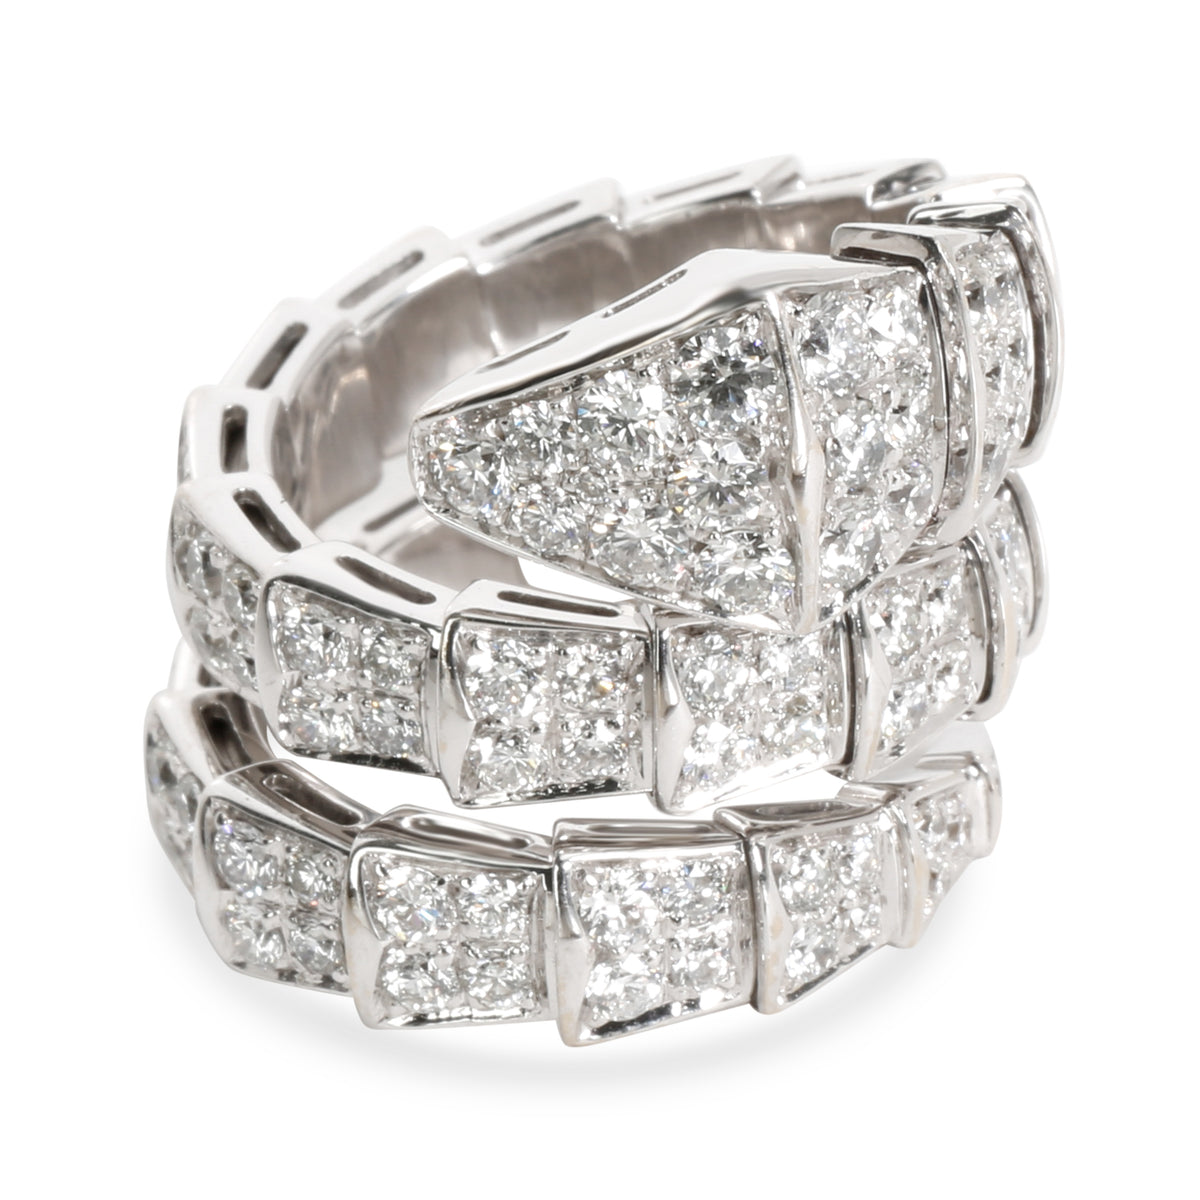 Bulgari Serpenti Diamond Ring in 18K White Gold 4 CTW